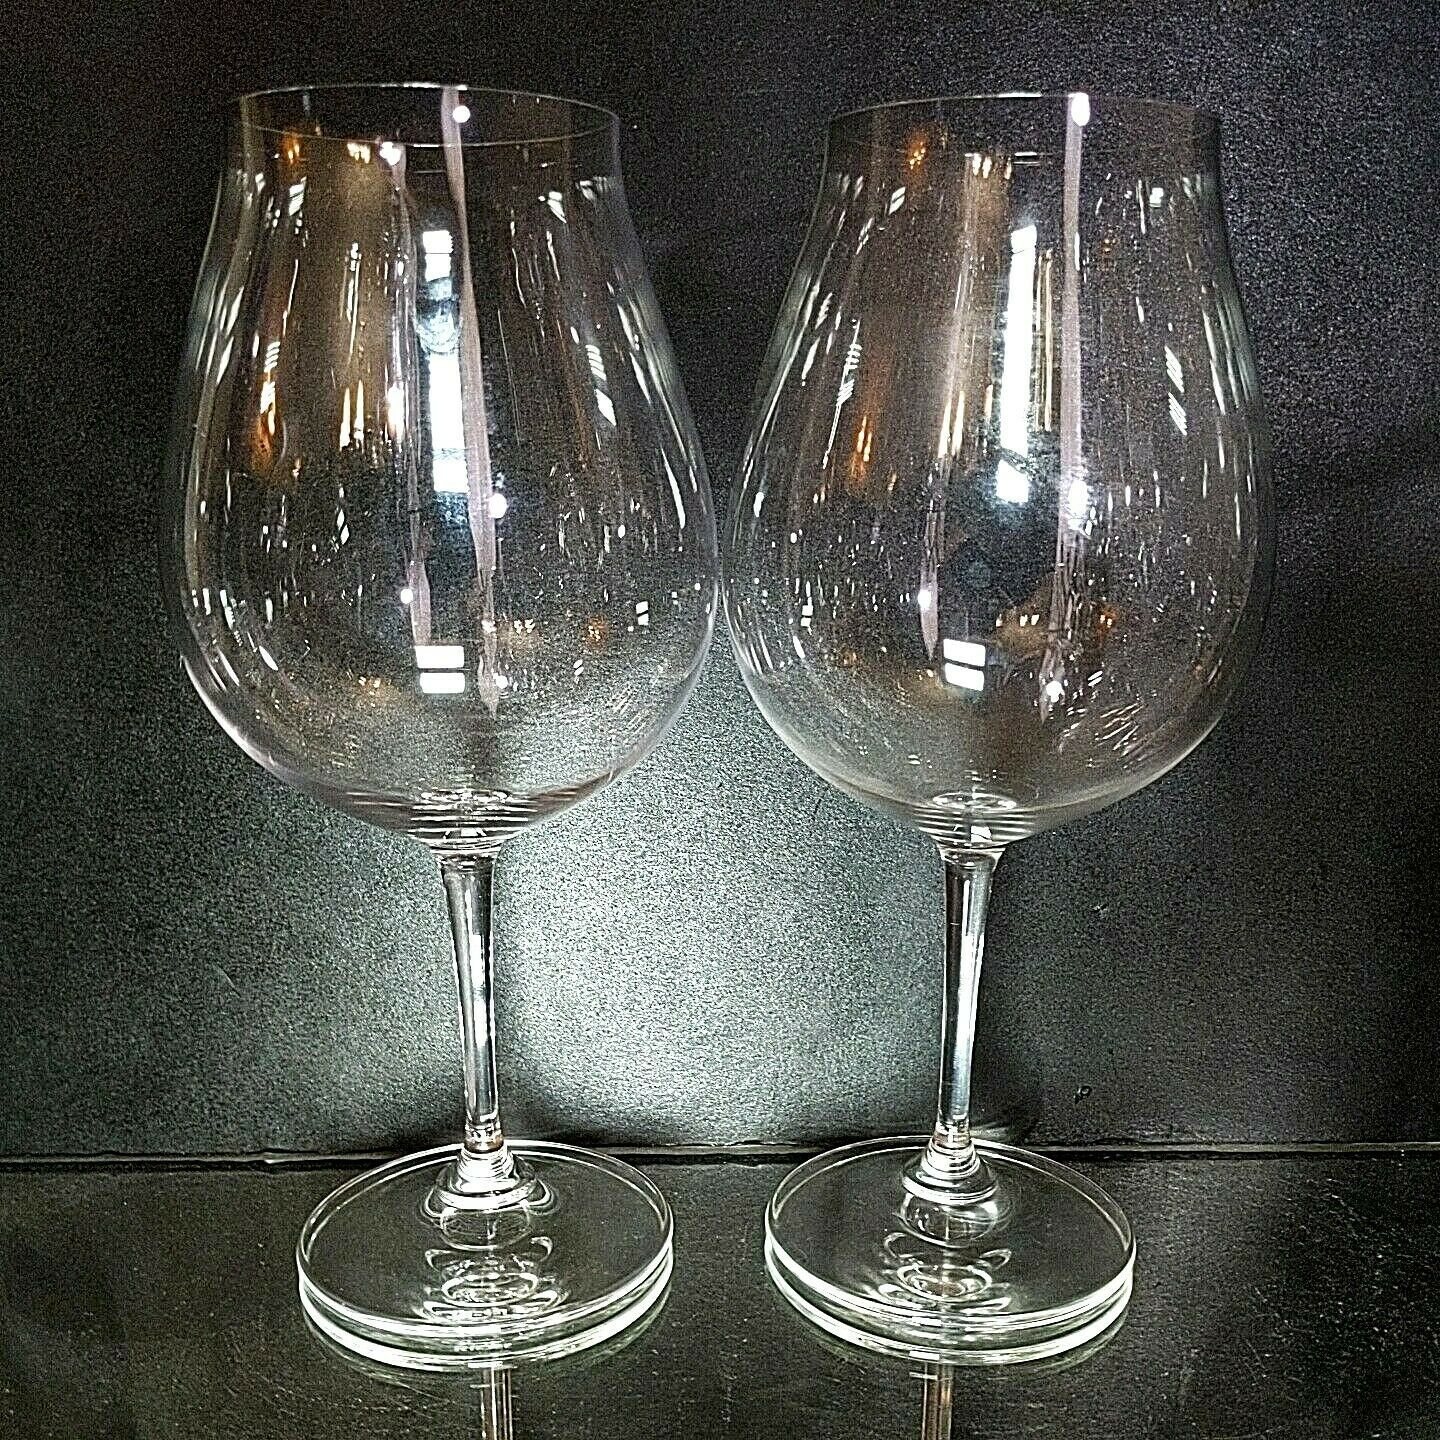 2 (Two) RIEDEL VINUM New World Pinot Noir Lead Free Crystal Wine Glasses -Signed